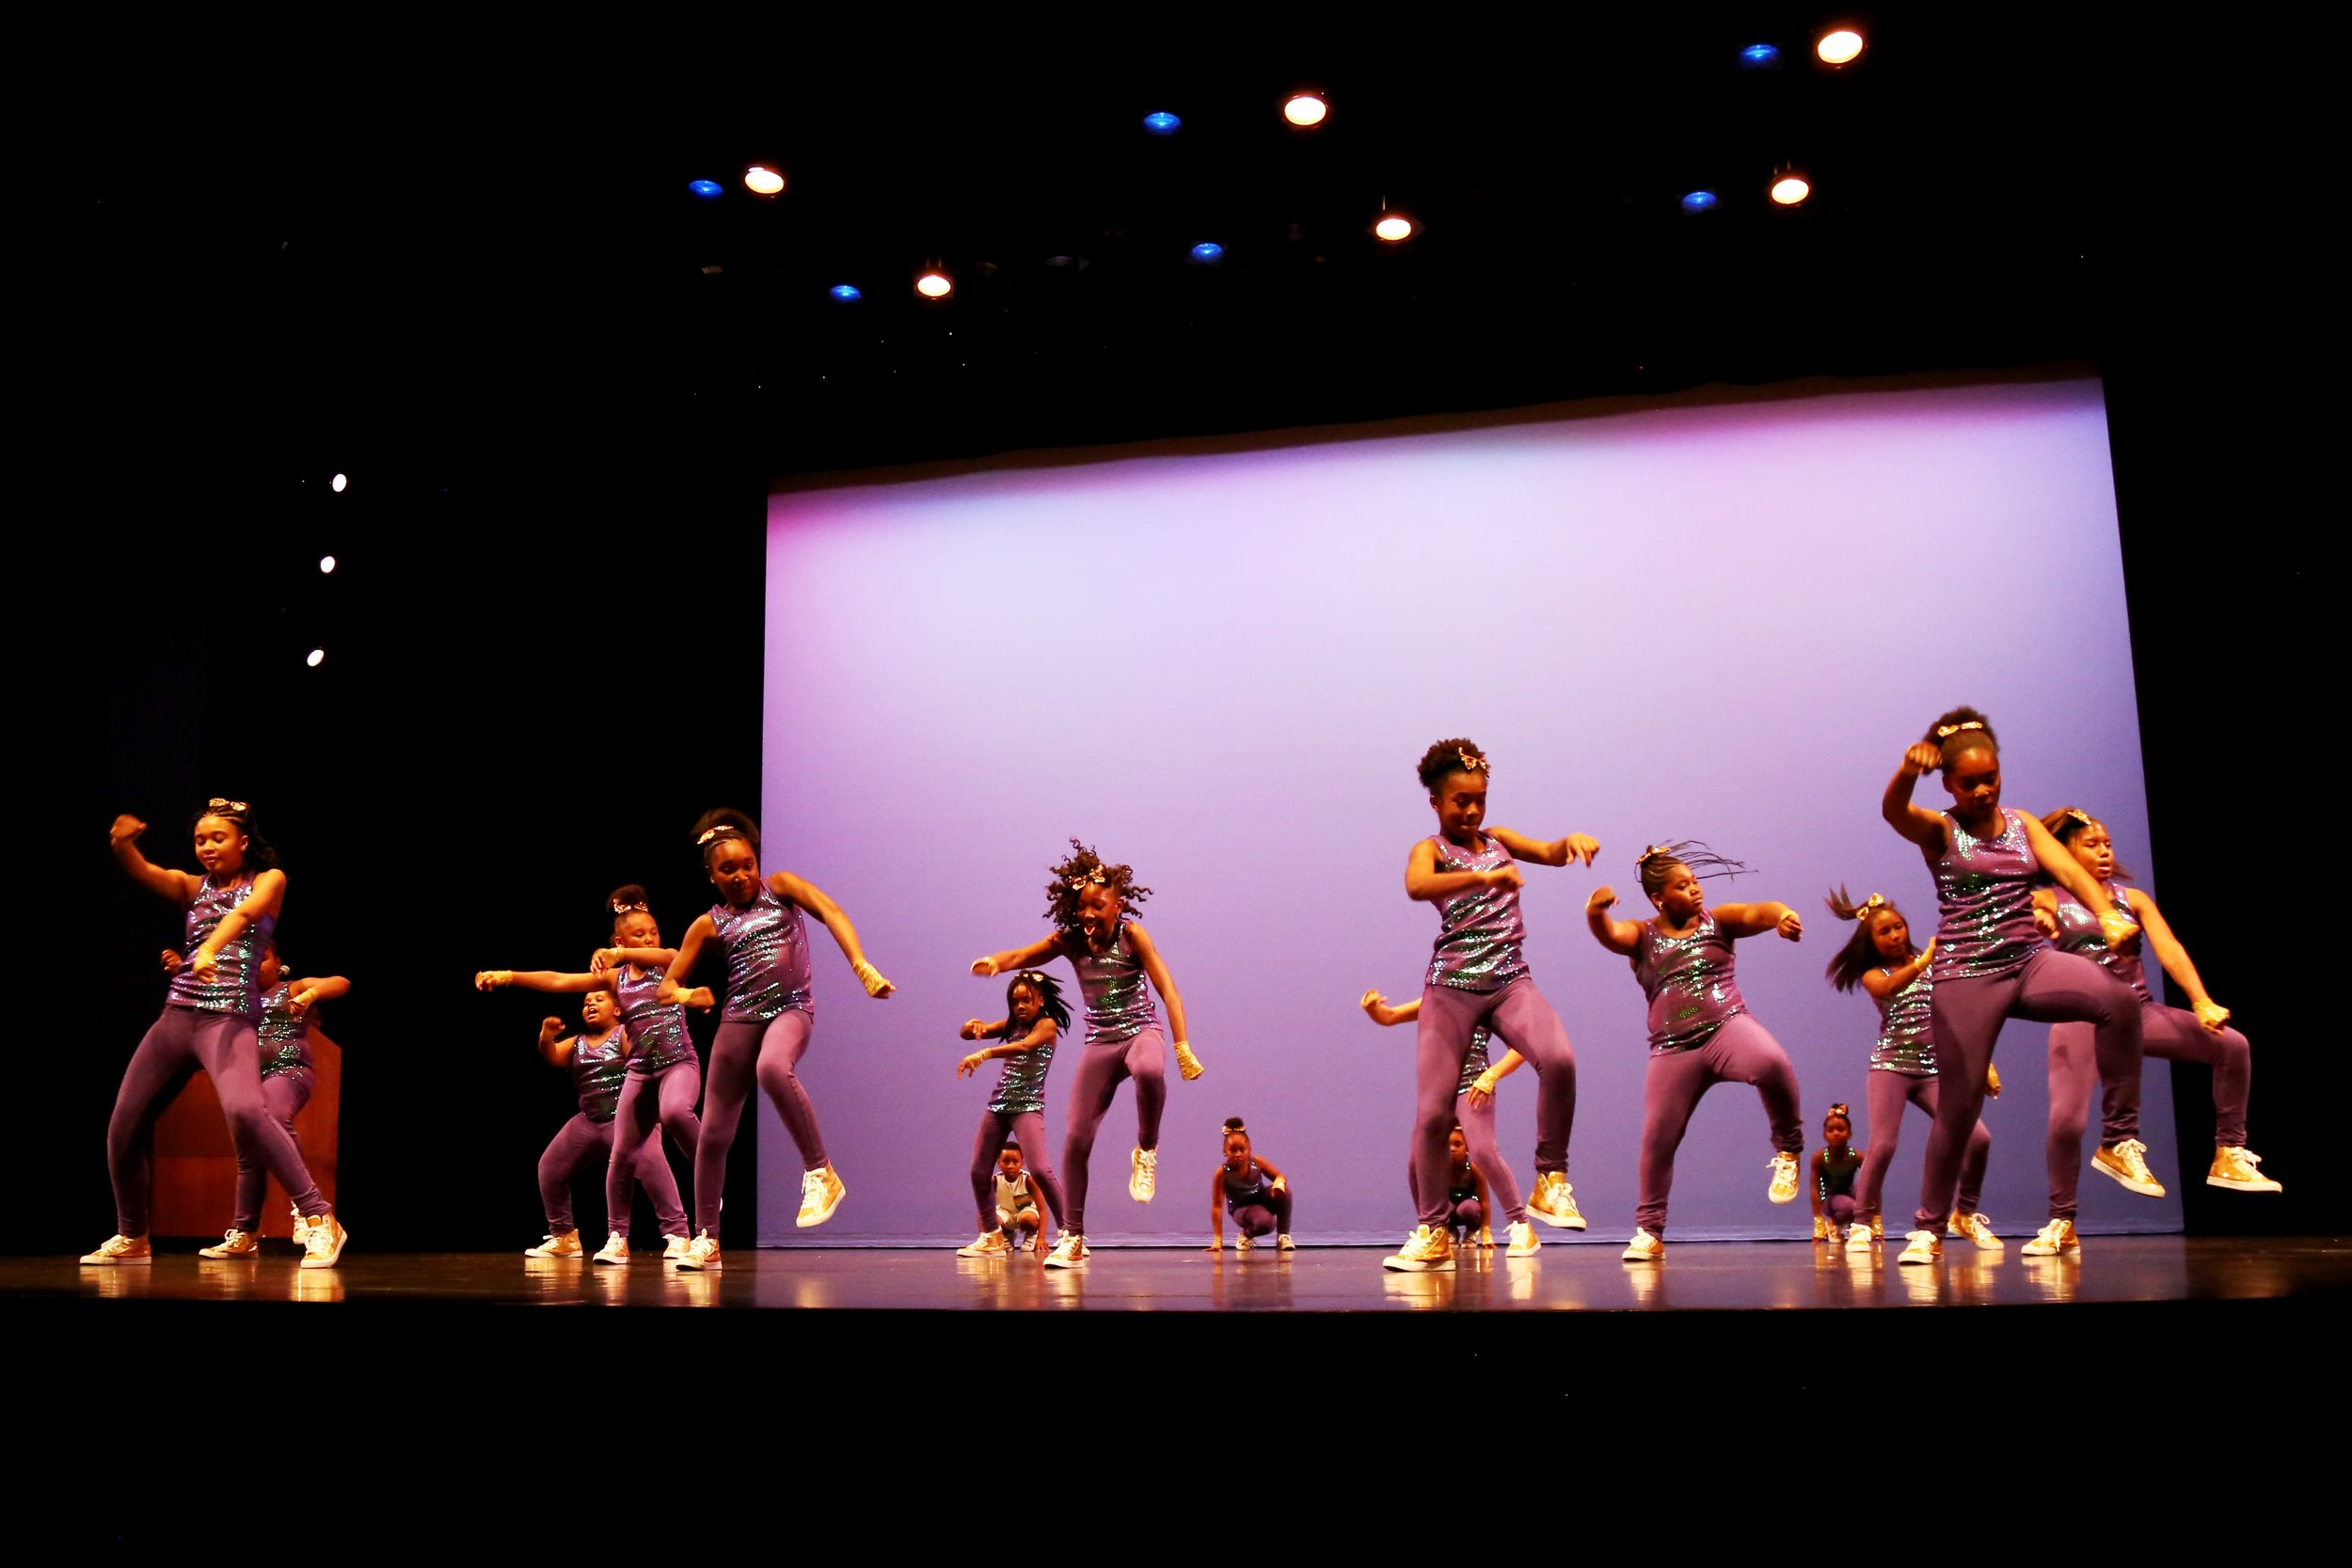 Young people from the Chestnut Street YMCA Dance Studio, choreographed by AR instructor Keisha Walker, perform at the ArtsReach Performing Arts Showcase May 21, 2017.  For more photos from that night: https://www.flickr.com/photos/kentuckycenter/albums/72157684538345165